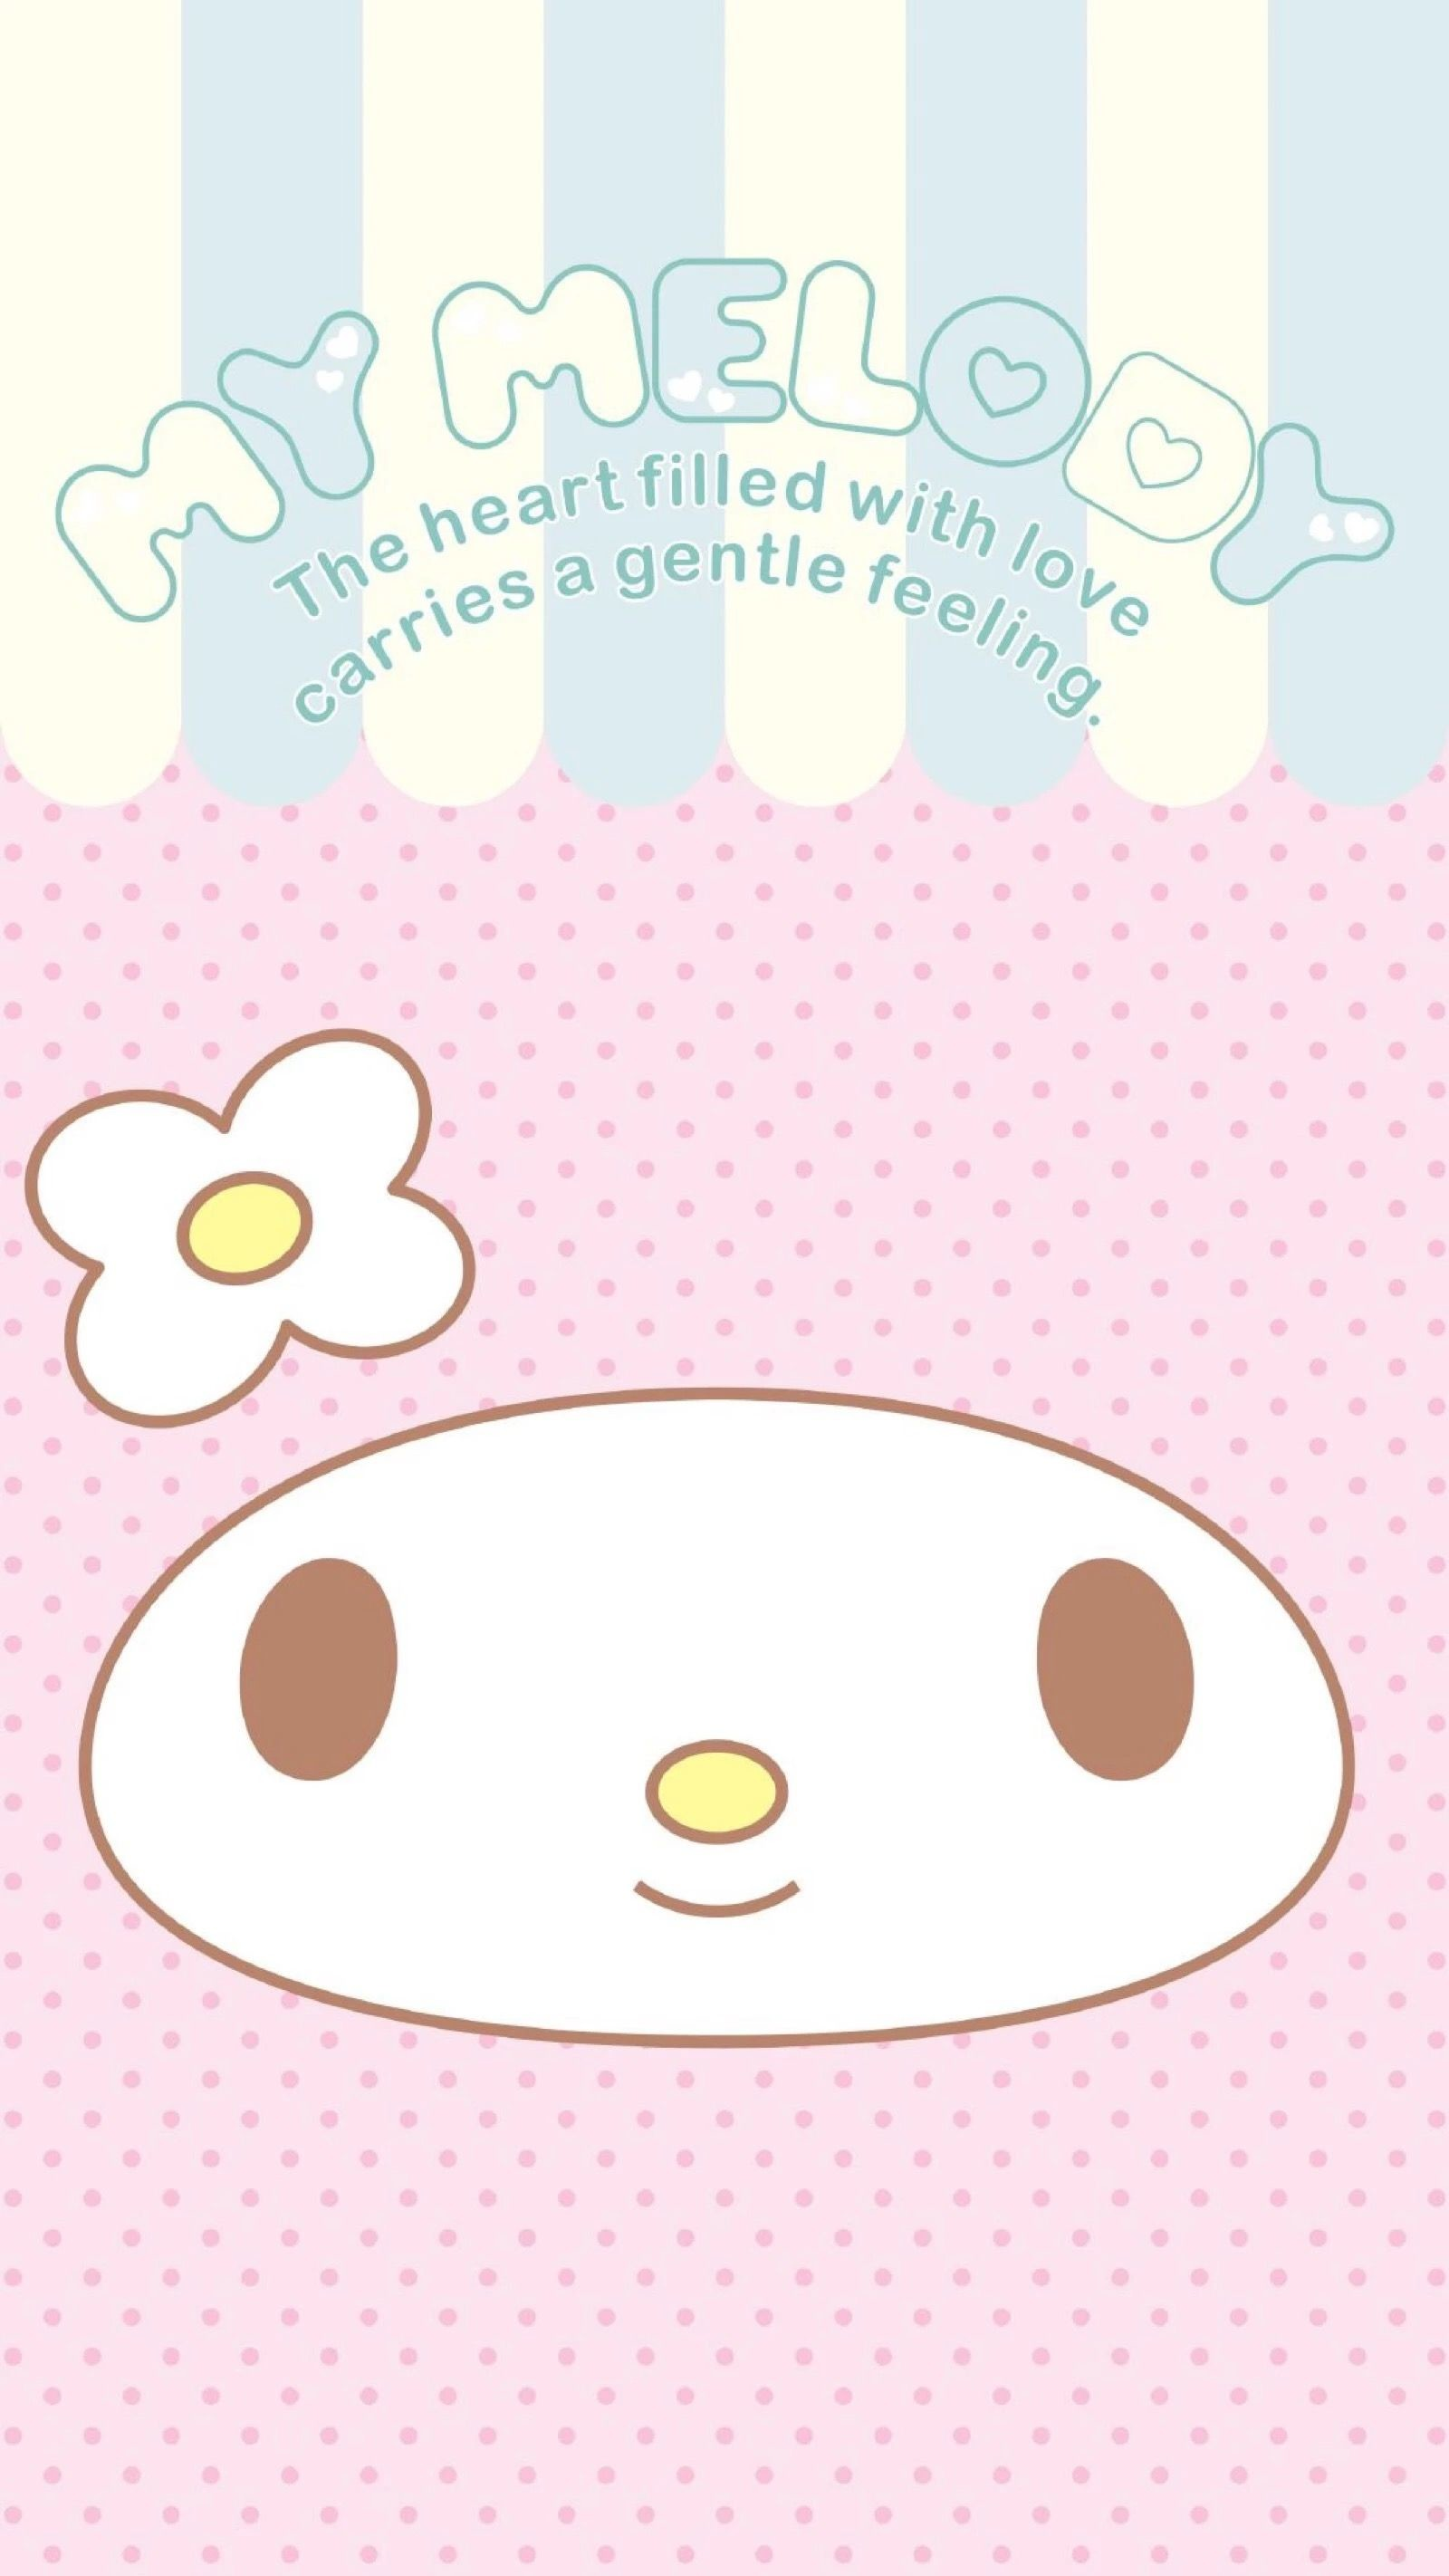 Sanrio Wallpapers Hd Wallpaper Collections 4kwallpaperwiki